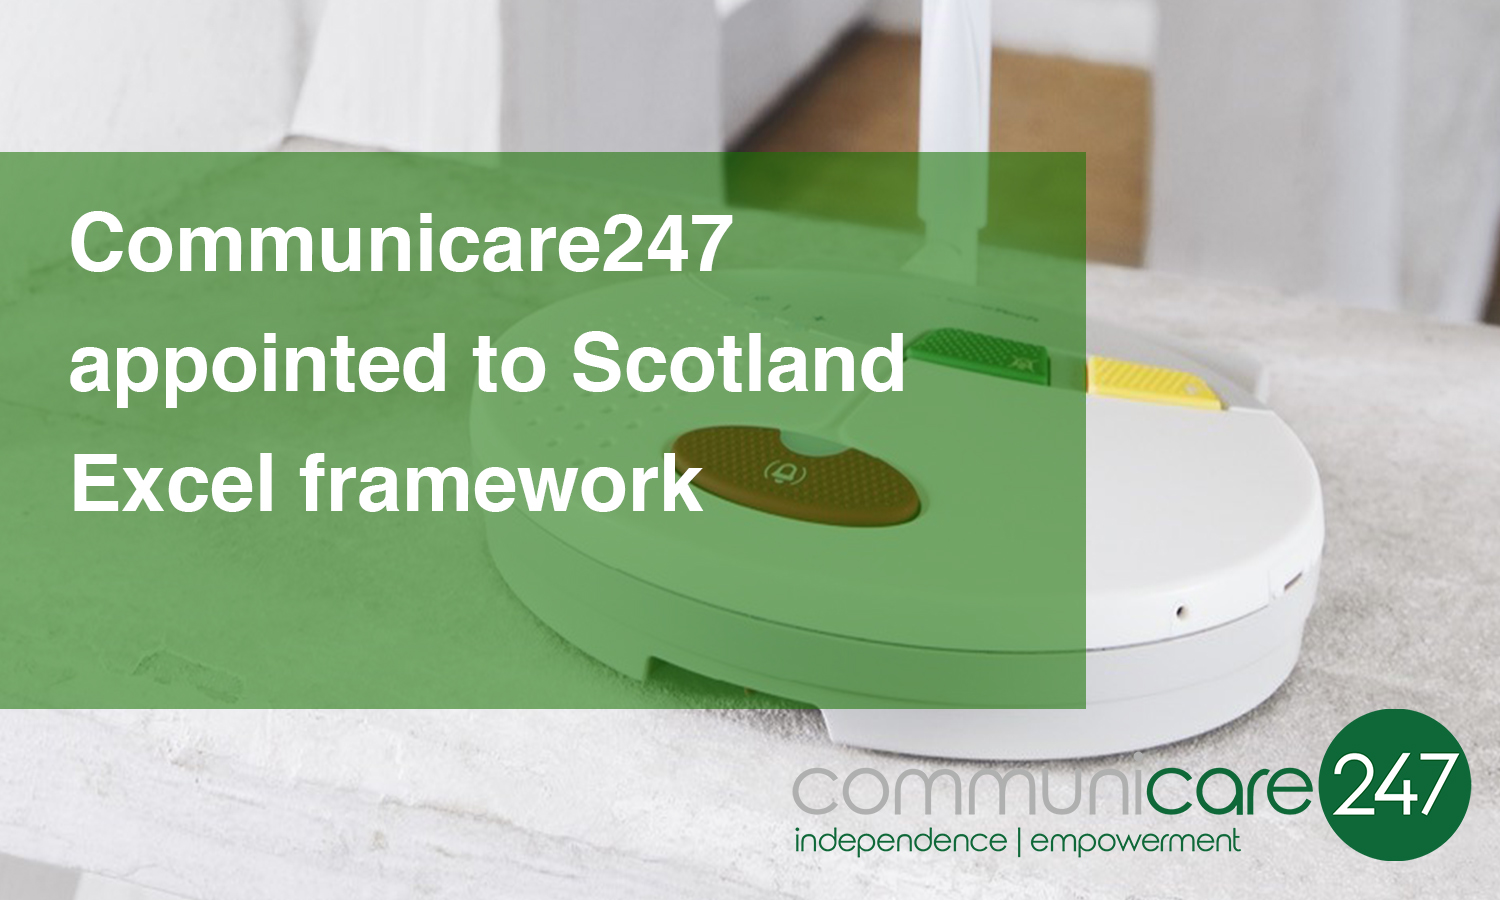 Communicare247 appointed to Scotland Excel framework